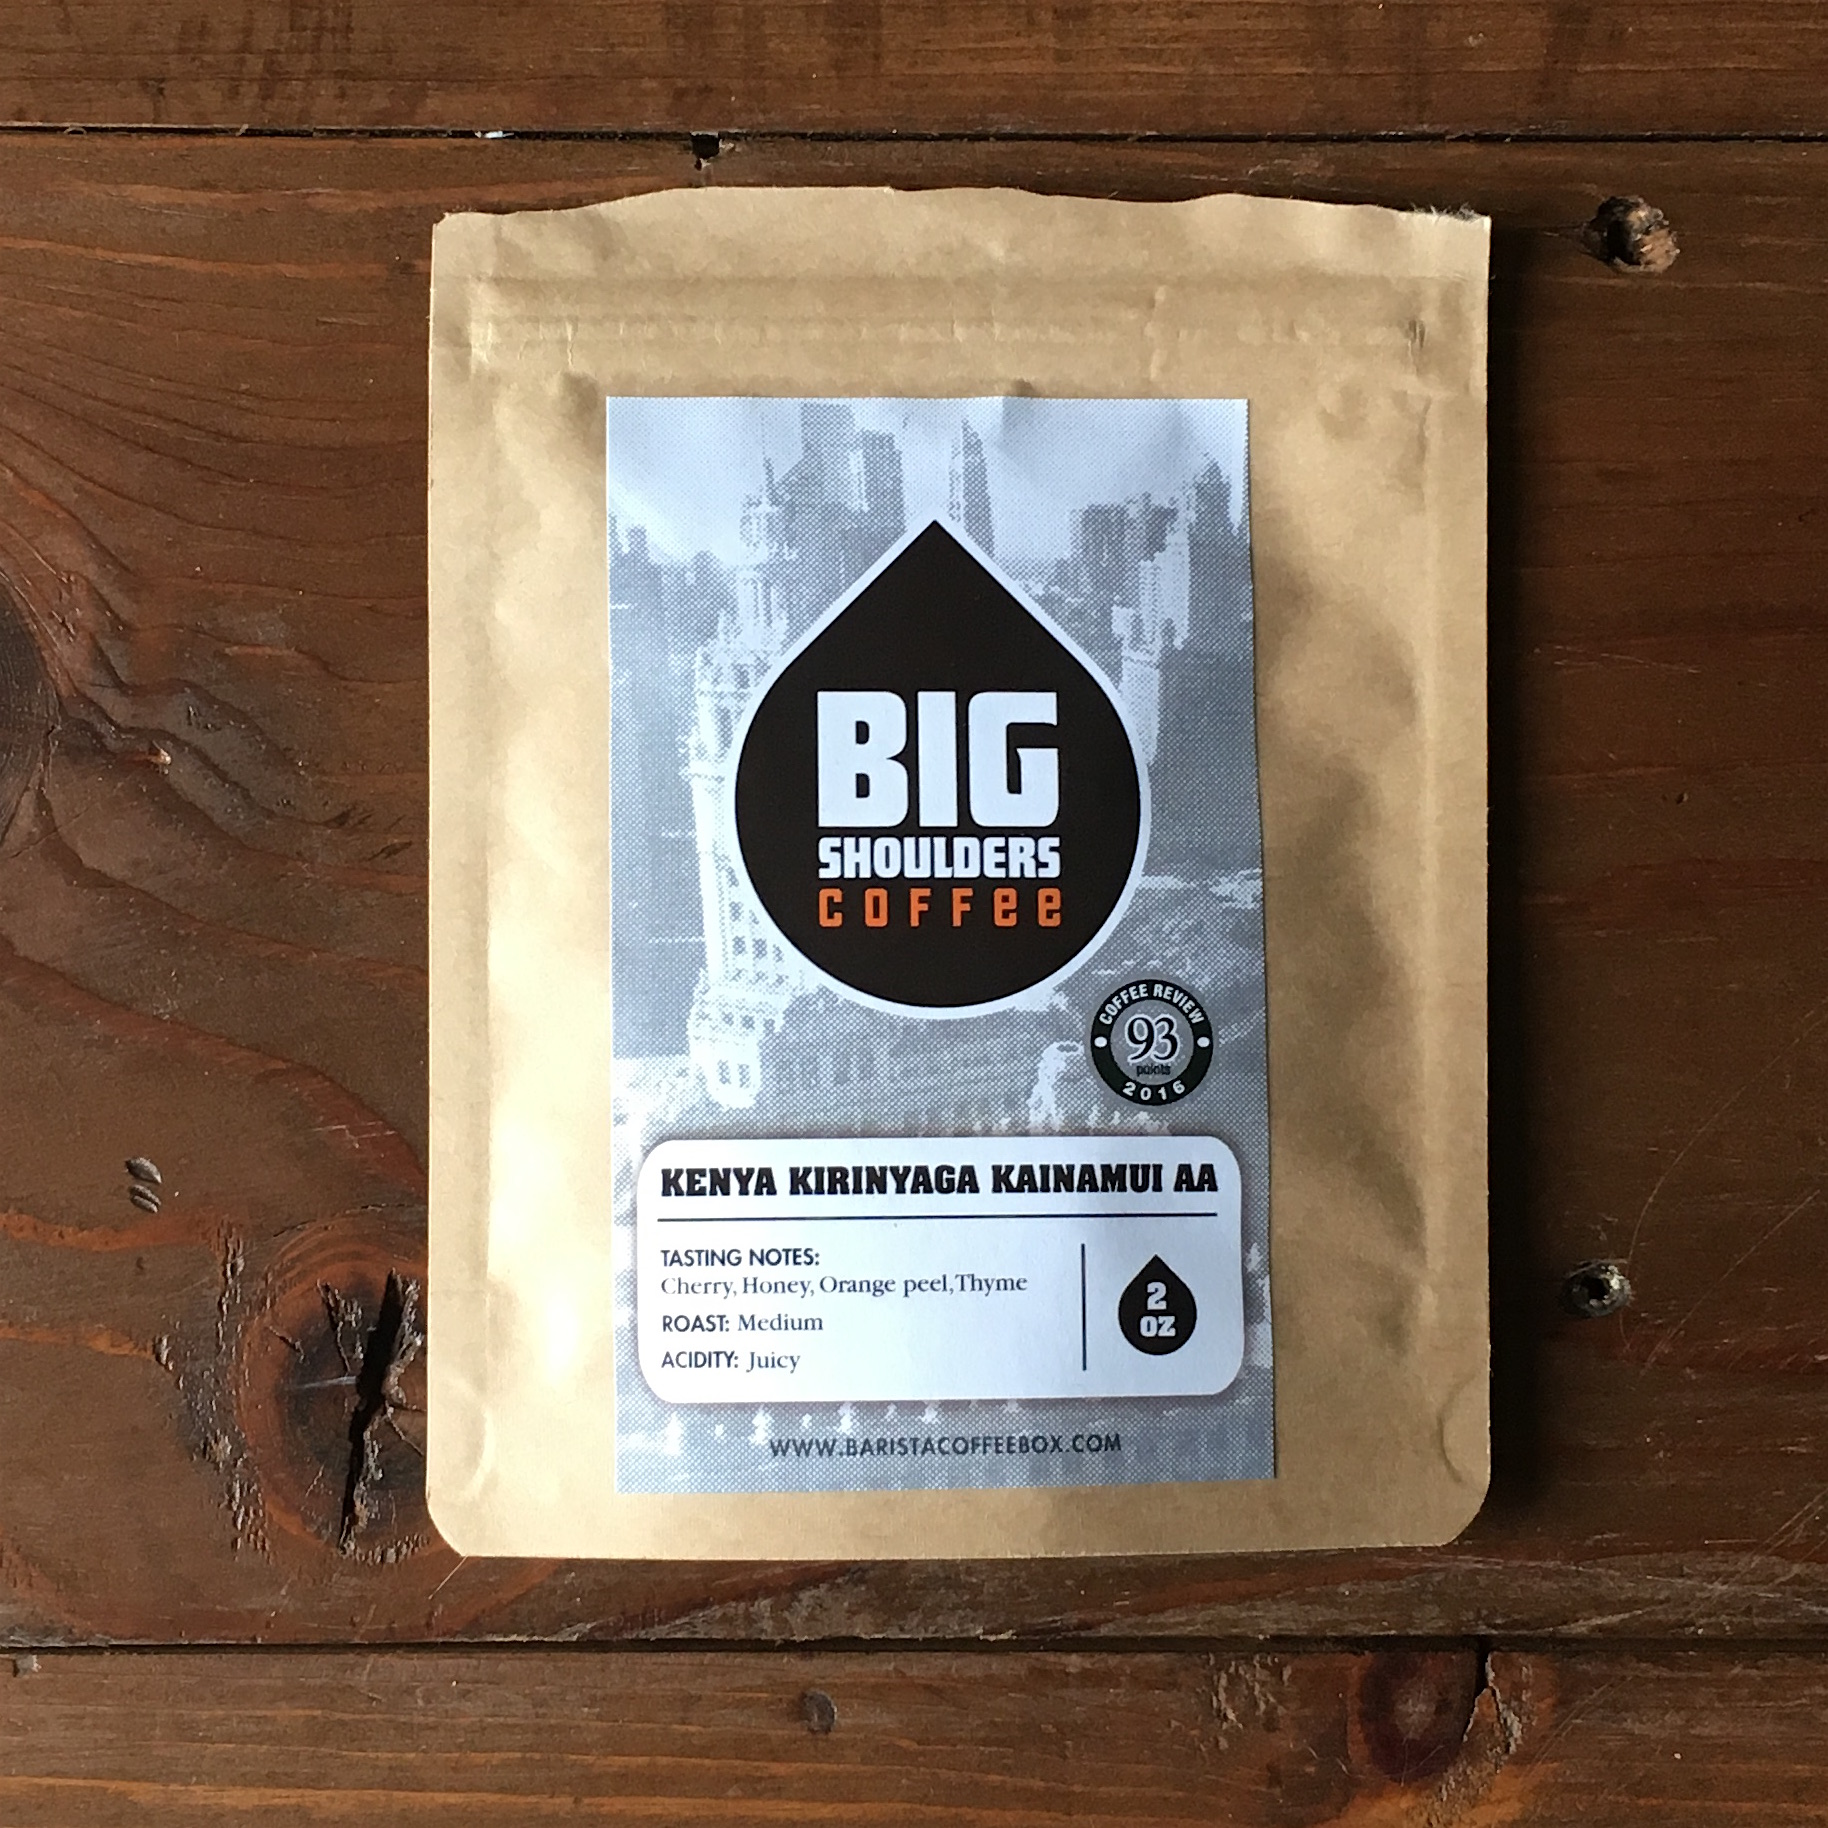 Big Shoulders Coffee Kenya Kirinyaga Kainamui AA